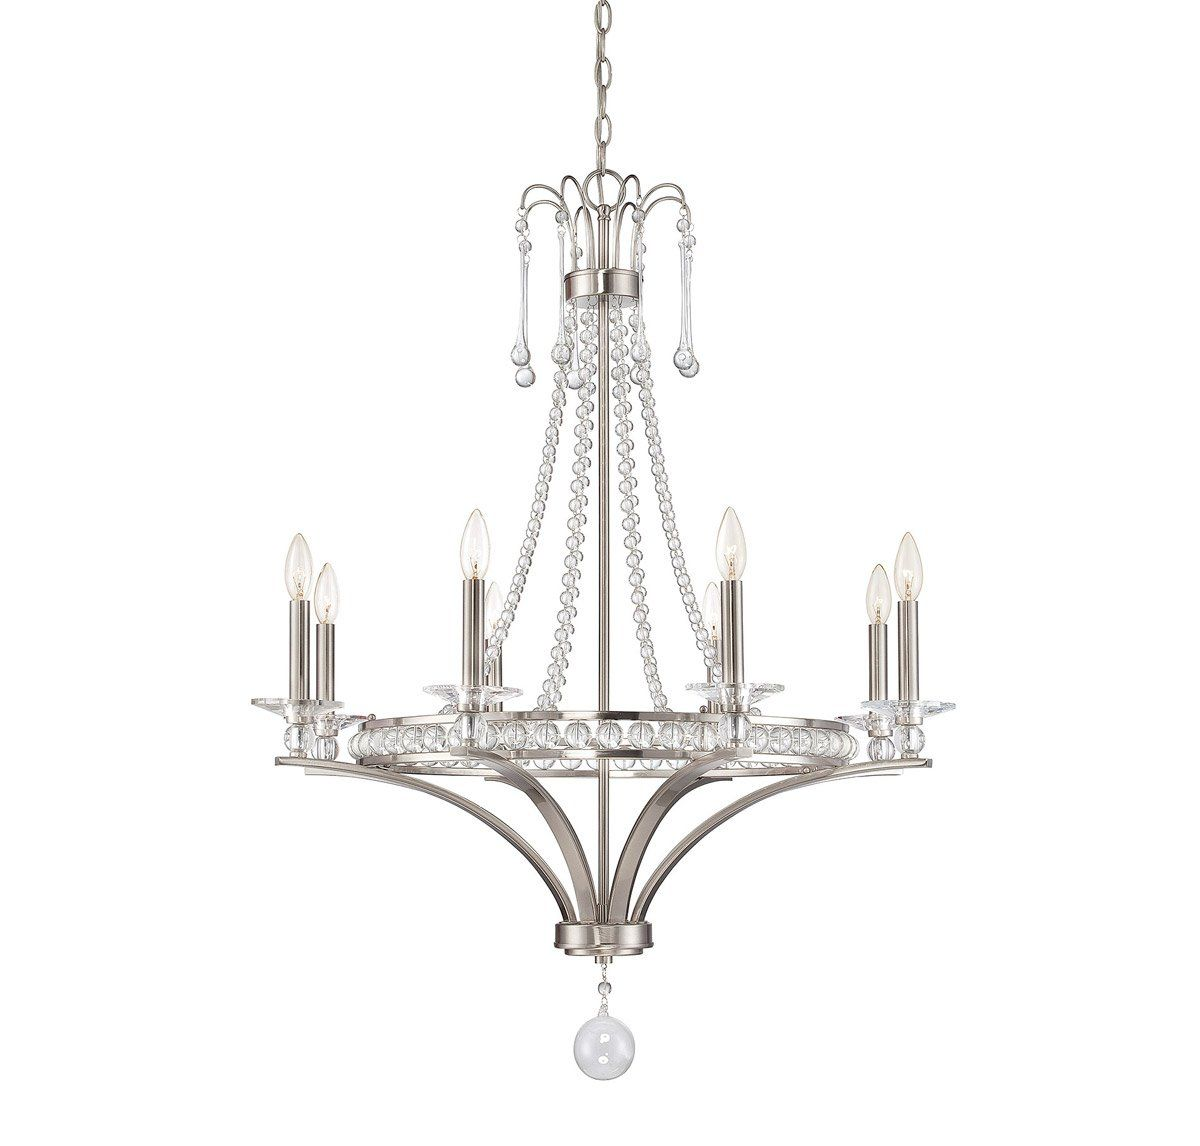 Chandeliers 8 Light With Satin Nickel Finish Candelabra